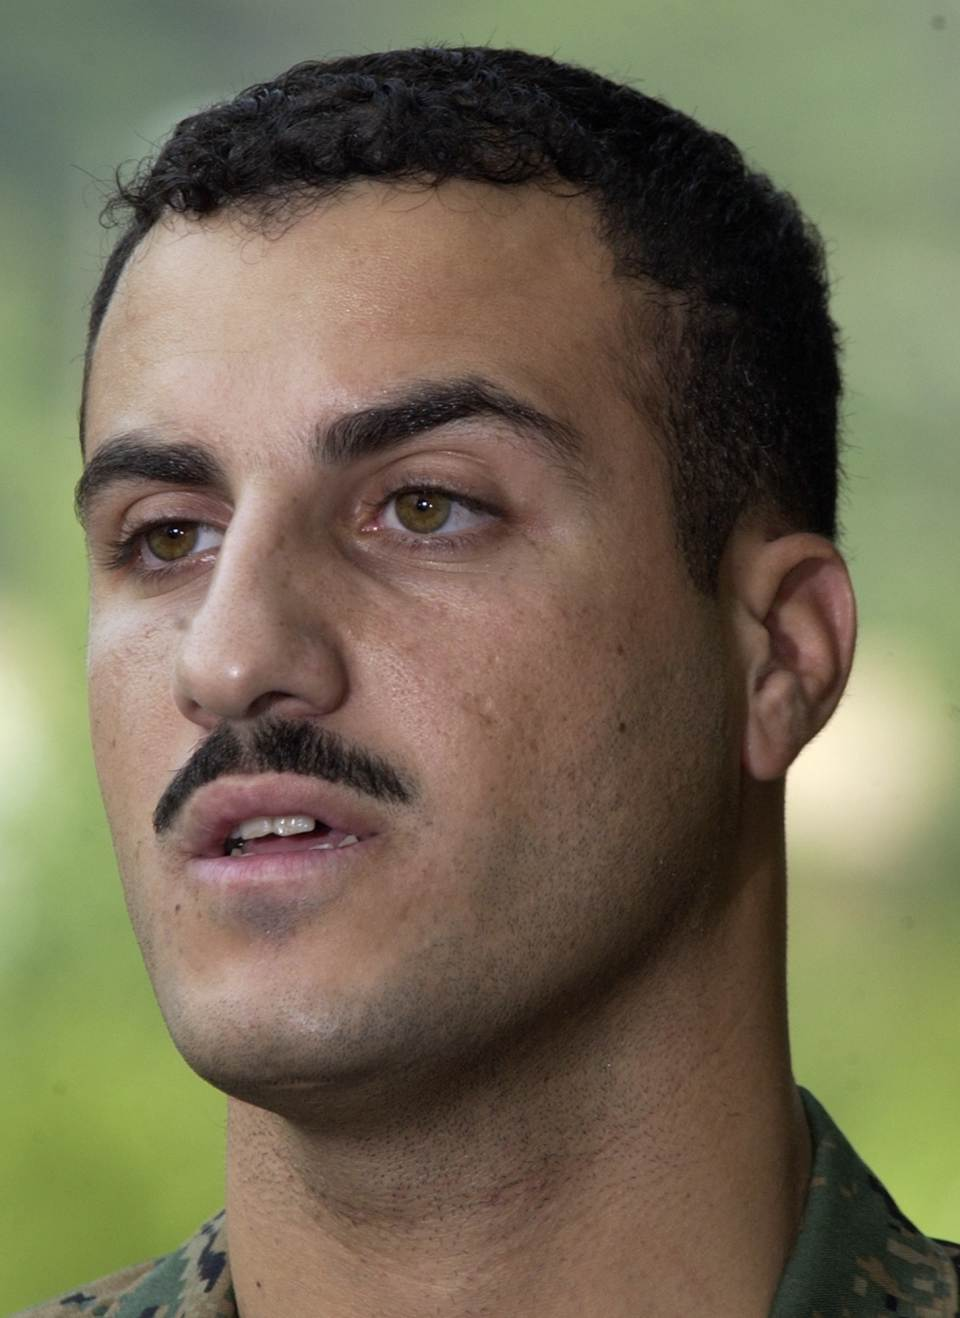 In this July 19, 2004 file photo, Marine Cpl. Wassef Ali Hassoun makes a statement to the press outside Quantico Marine Base in Quantico, Va.  A...